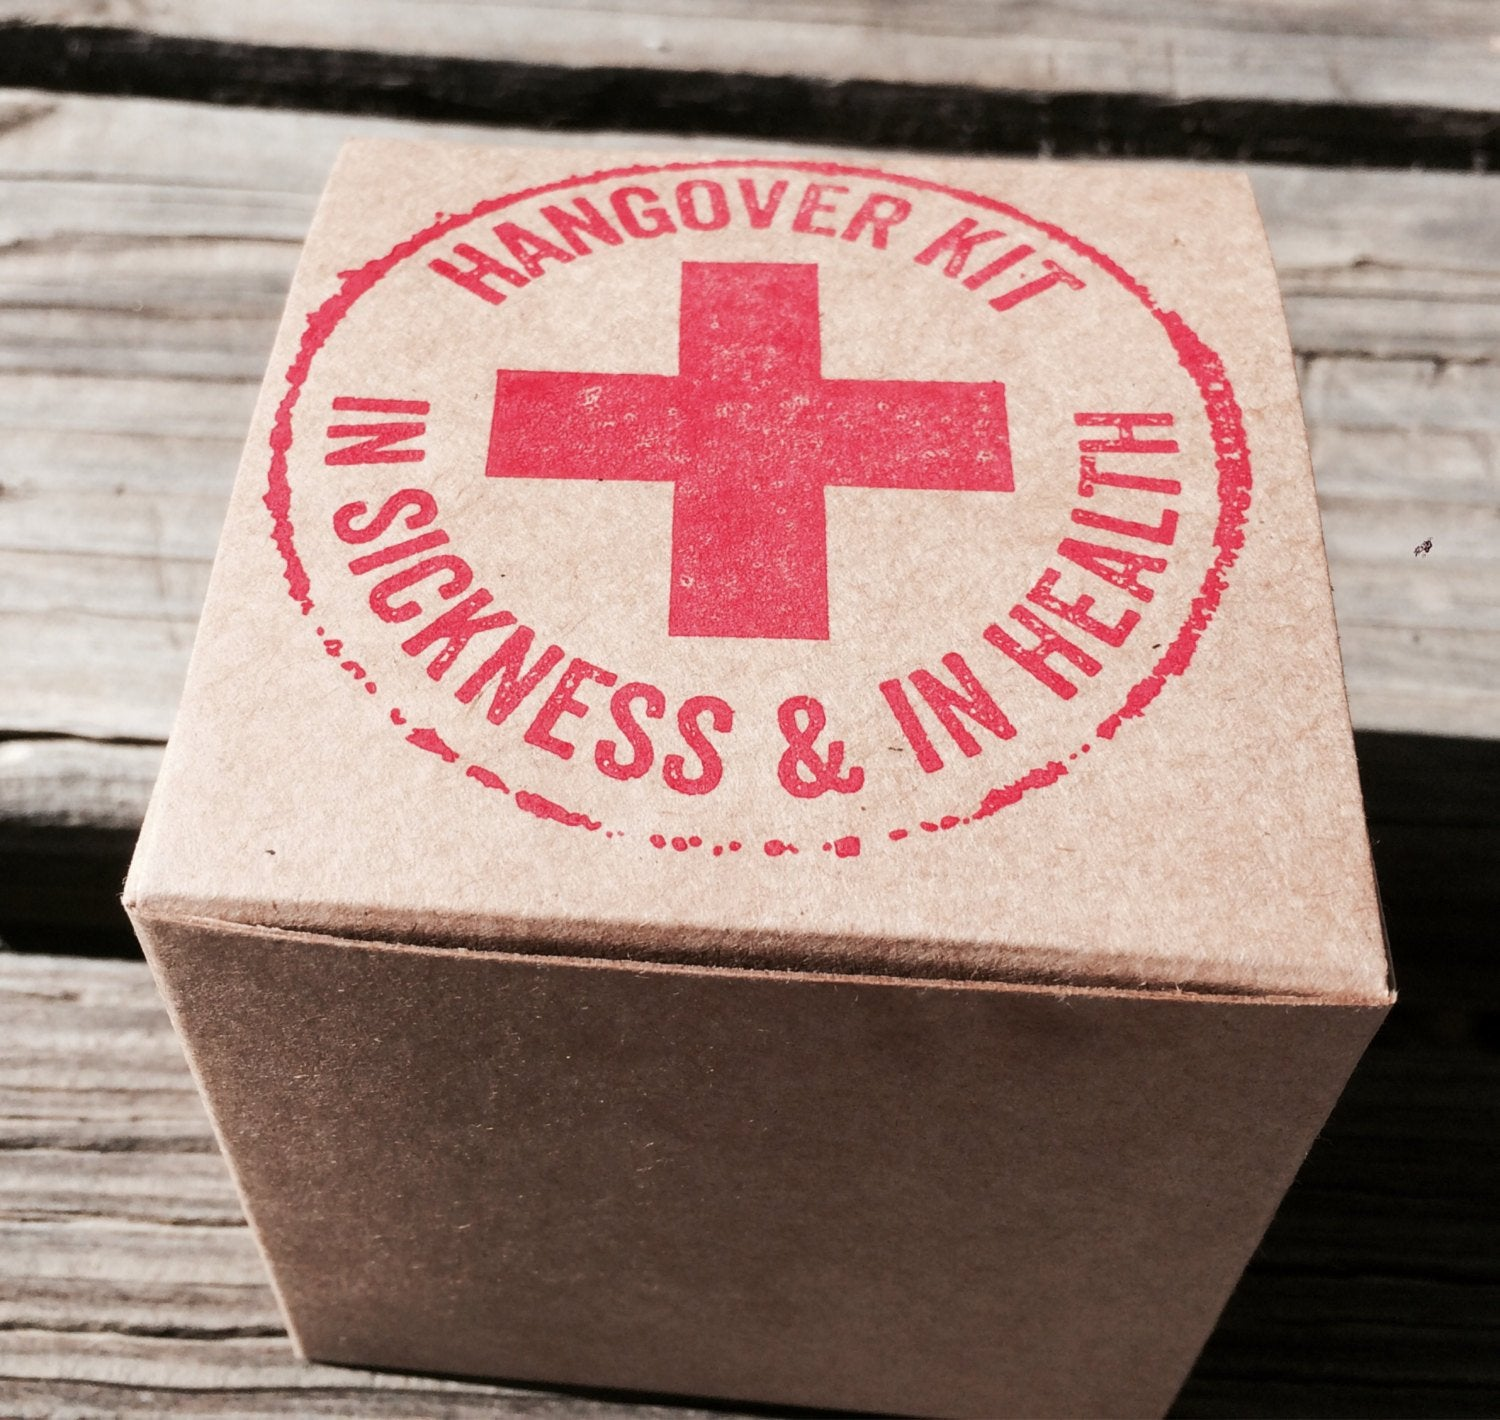 10 Hangover Kit Boxes, Hangover Recovery Kit, Wedding Hangover Kit, Hangover Survival Kit, Bachelorette Party